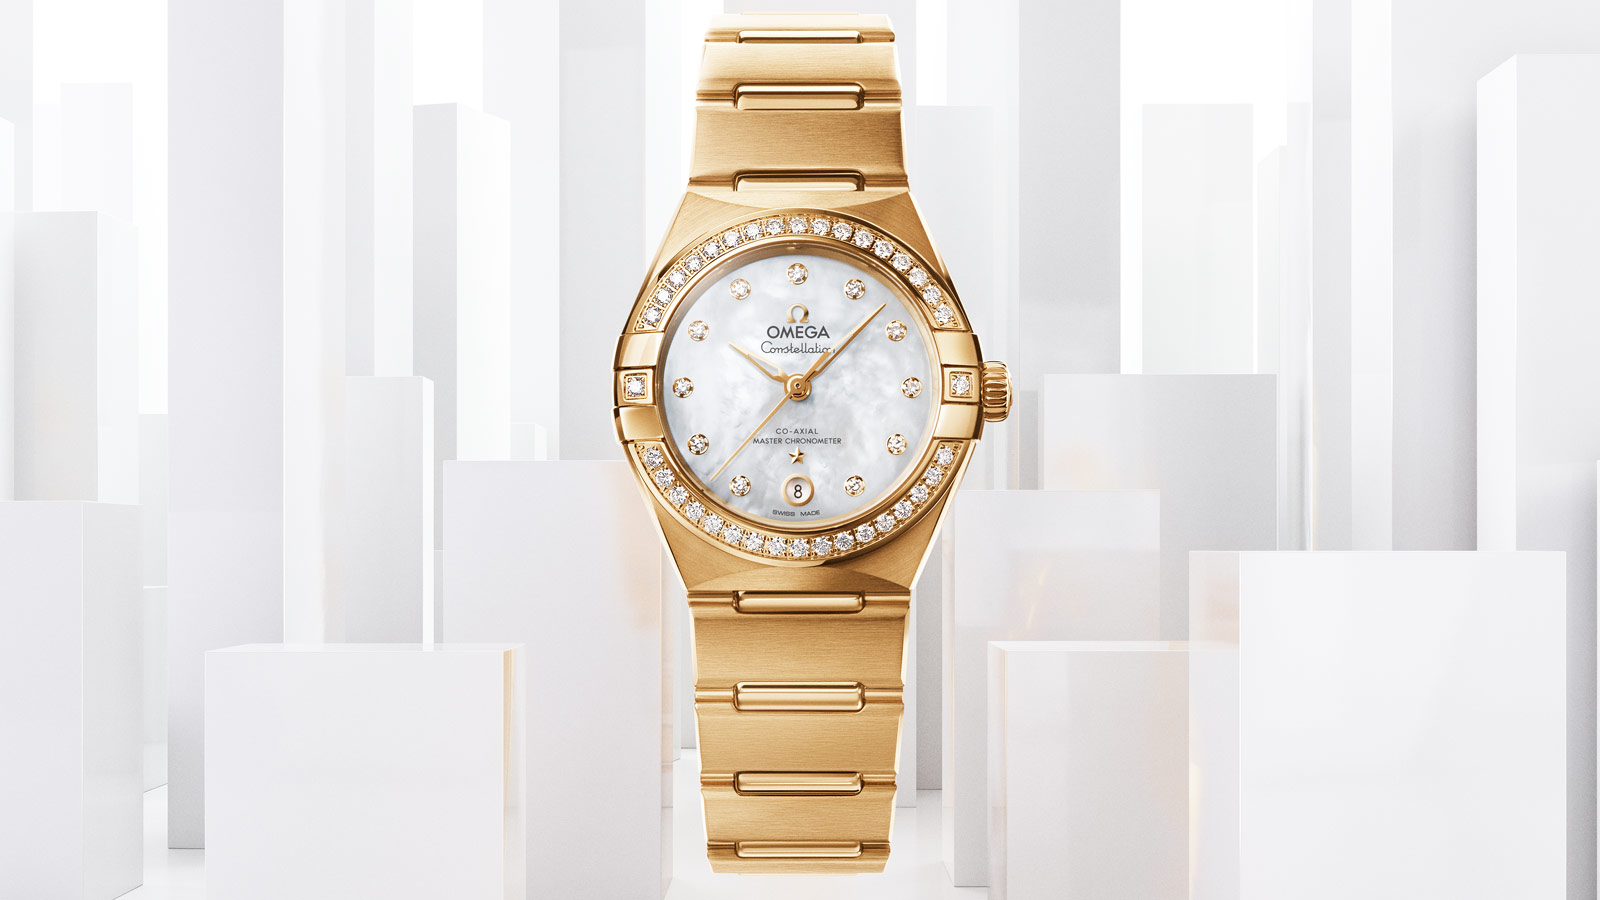 Constellation Constellation Constellation OMEGA Co‑Axial Master Chronometer 29 mm Watch - 131.55.29.20.55.002